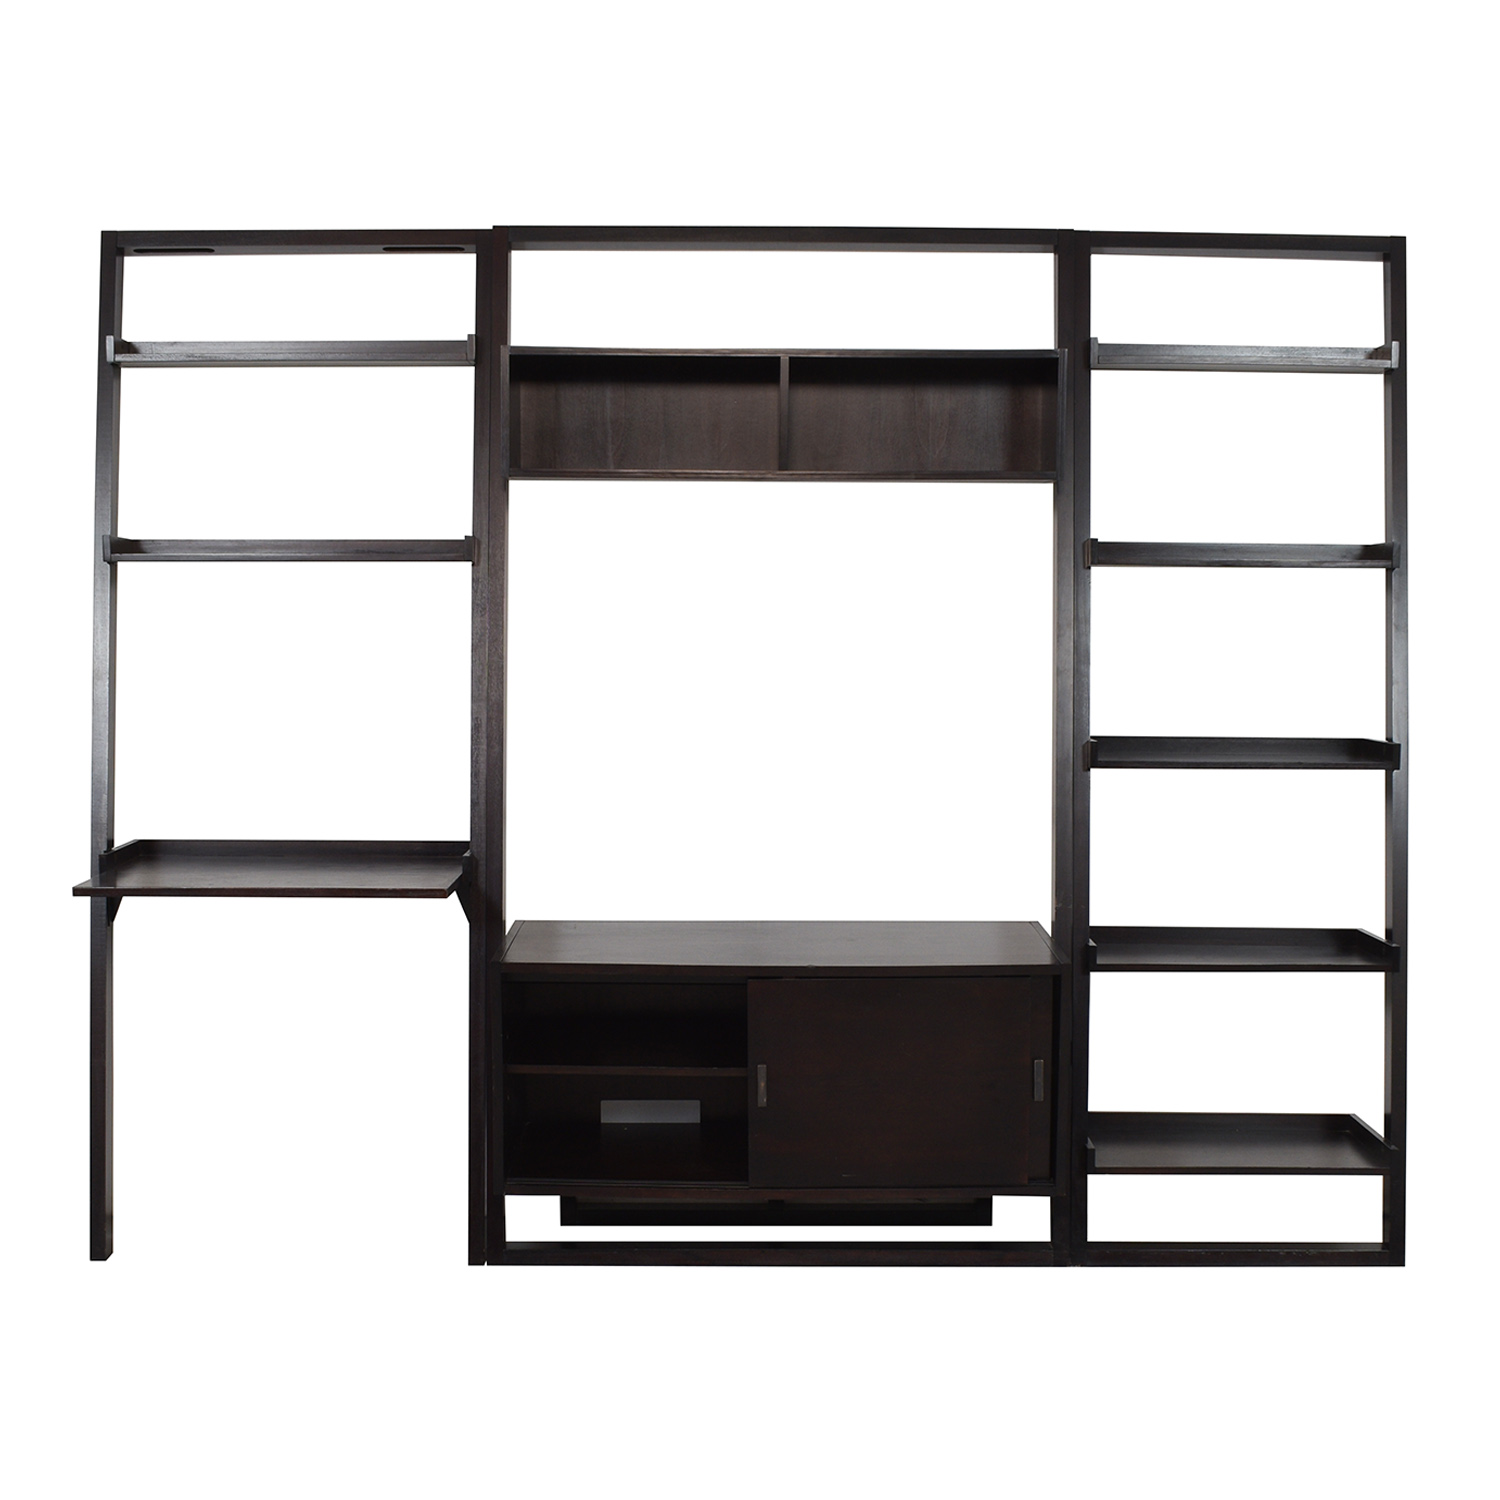 Crate & Barrel Crate & Barrel Sloane Leaning Bookcase Storage